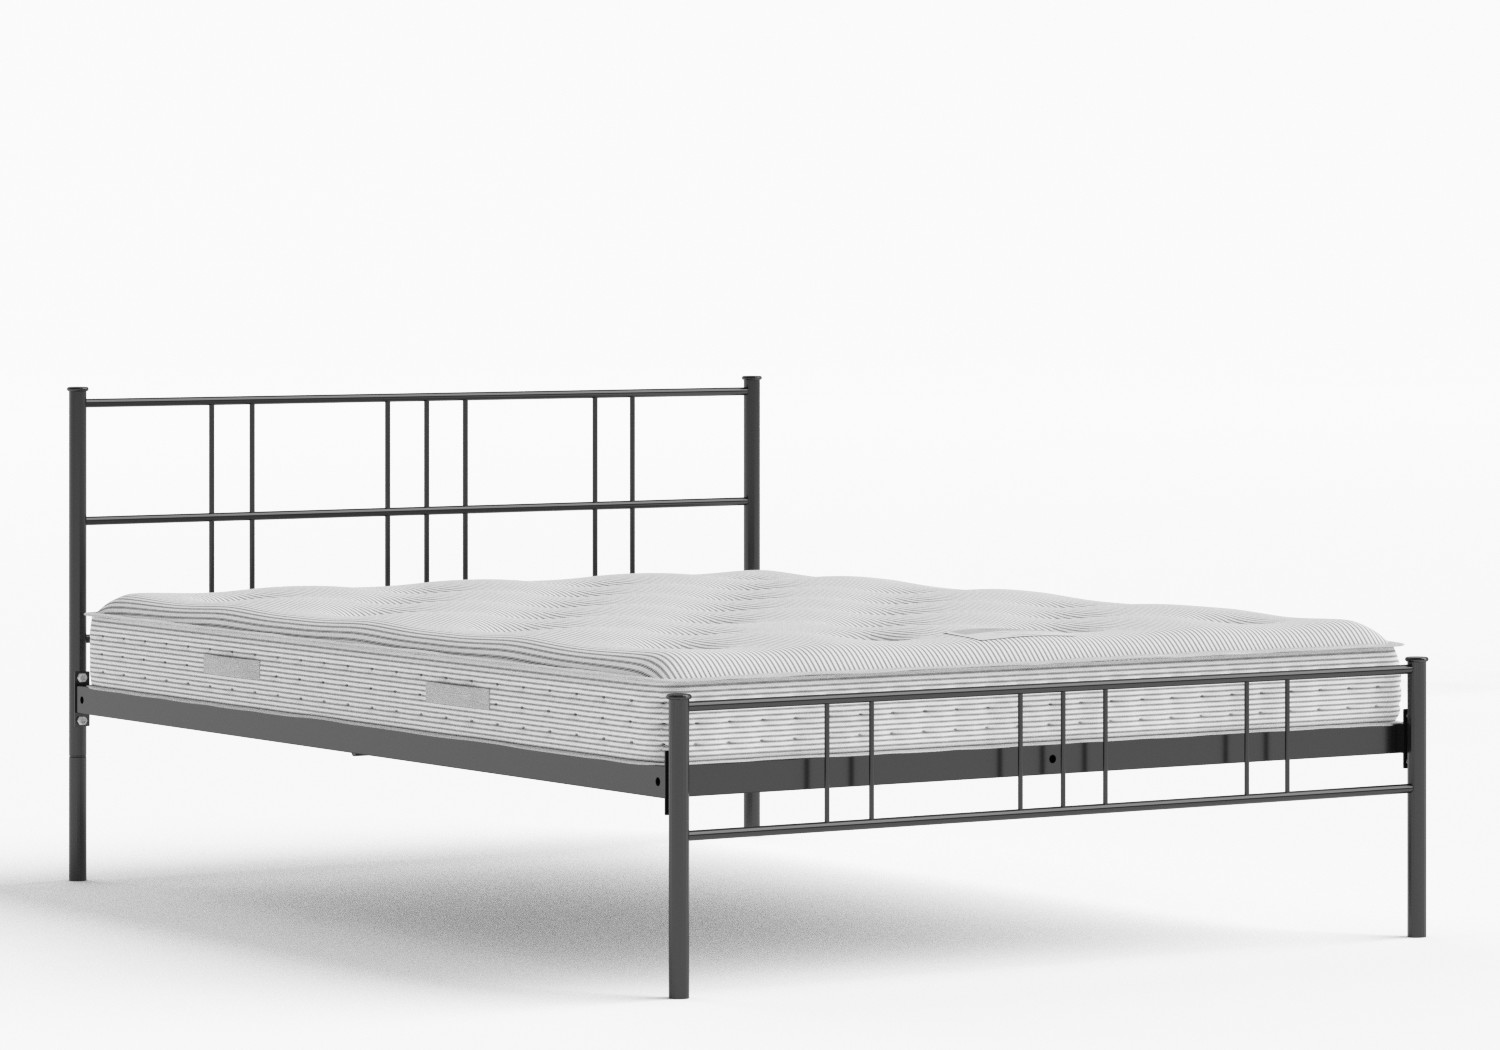 Mortlake Iron/Metal Bed in Satin Black shown with Juno 1 mattress